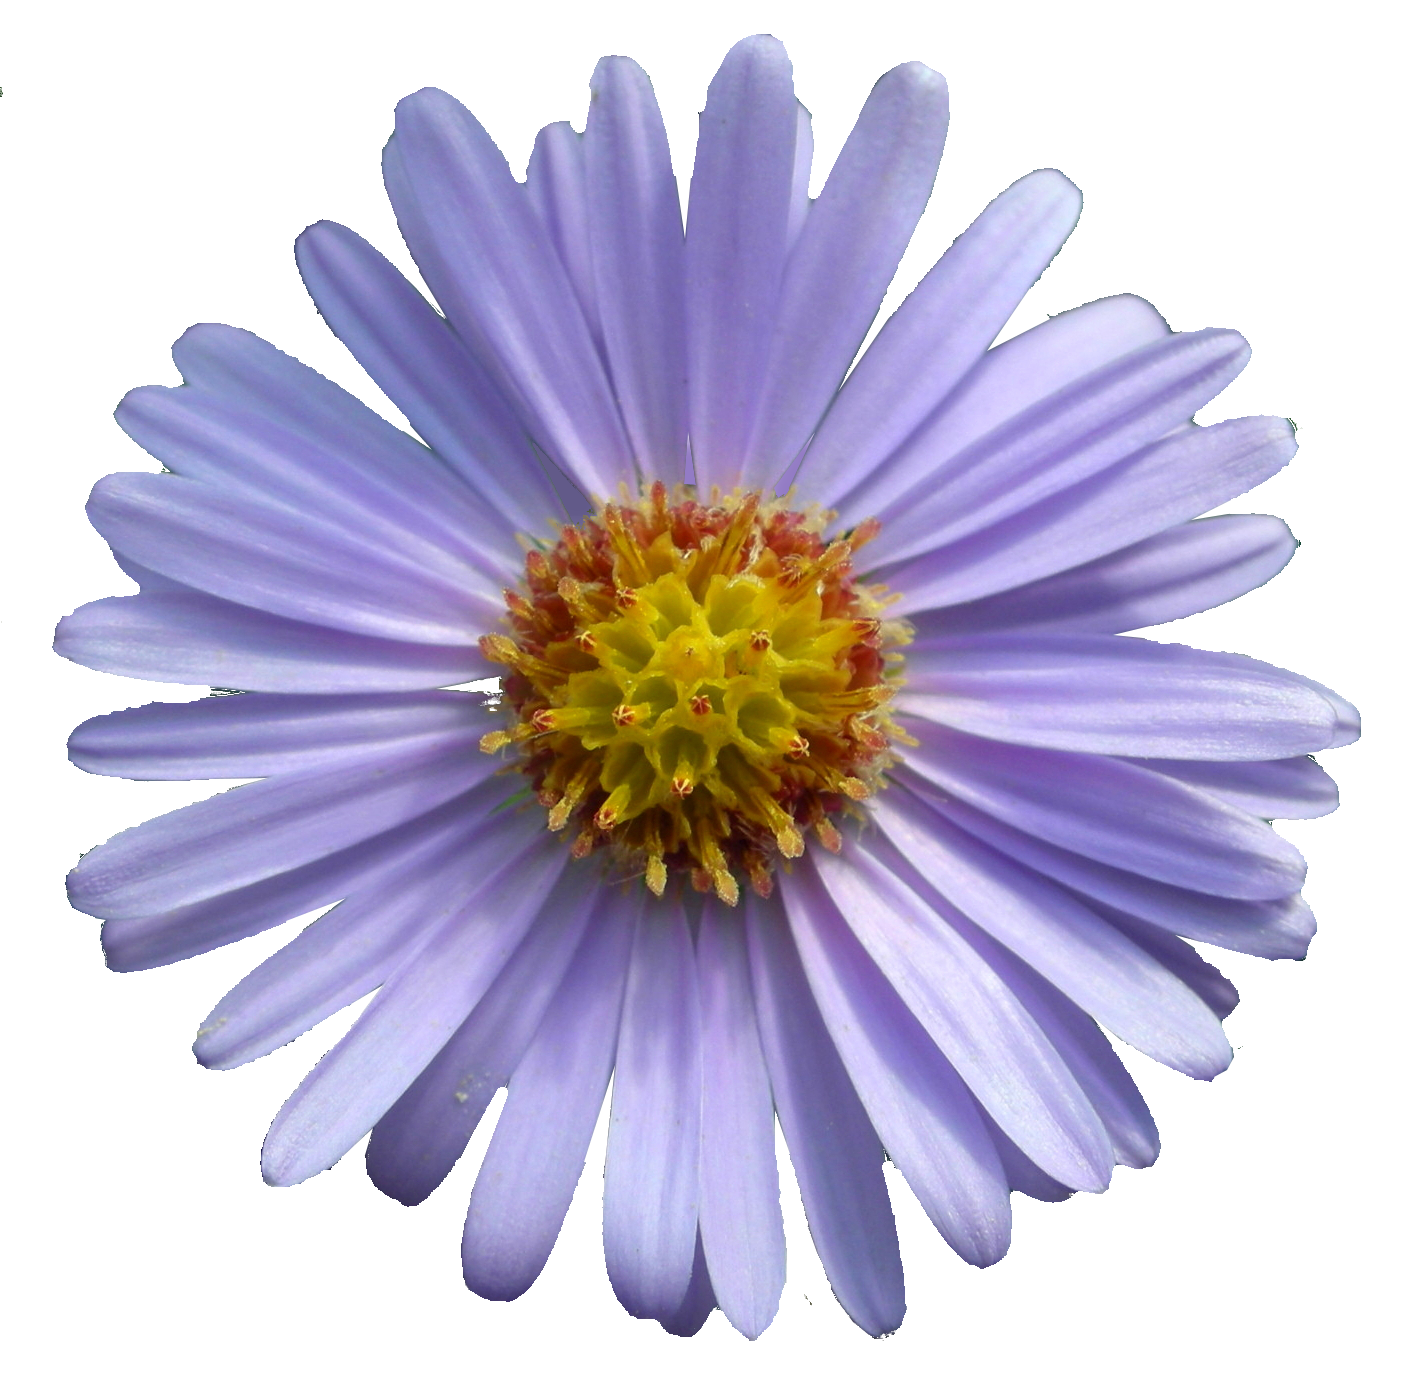 September Flower Aster